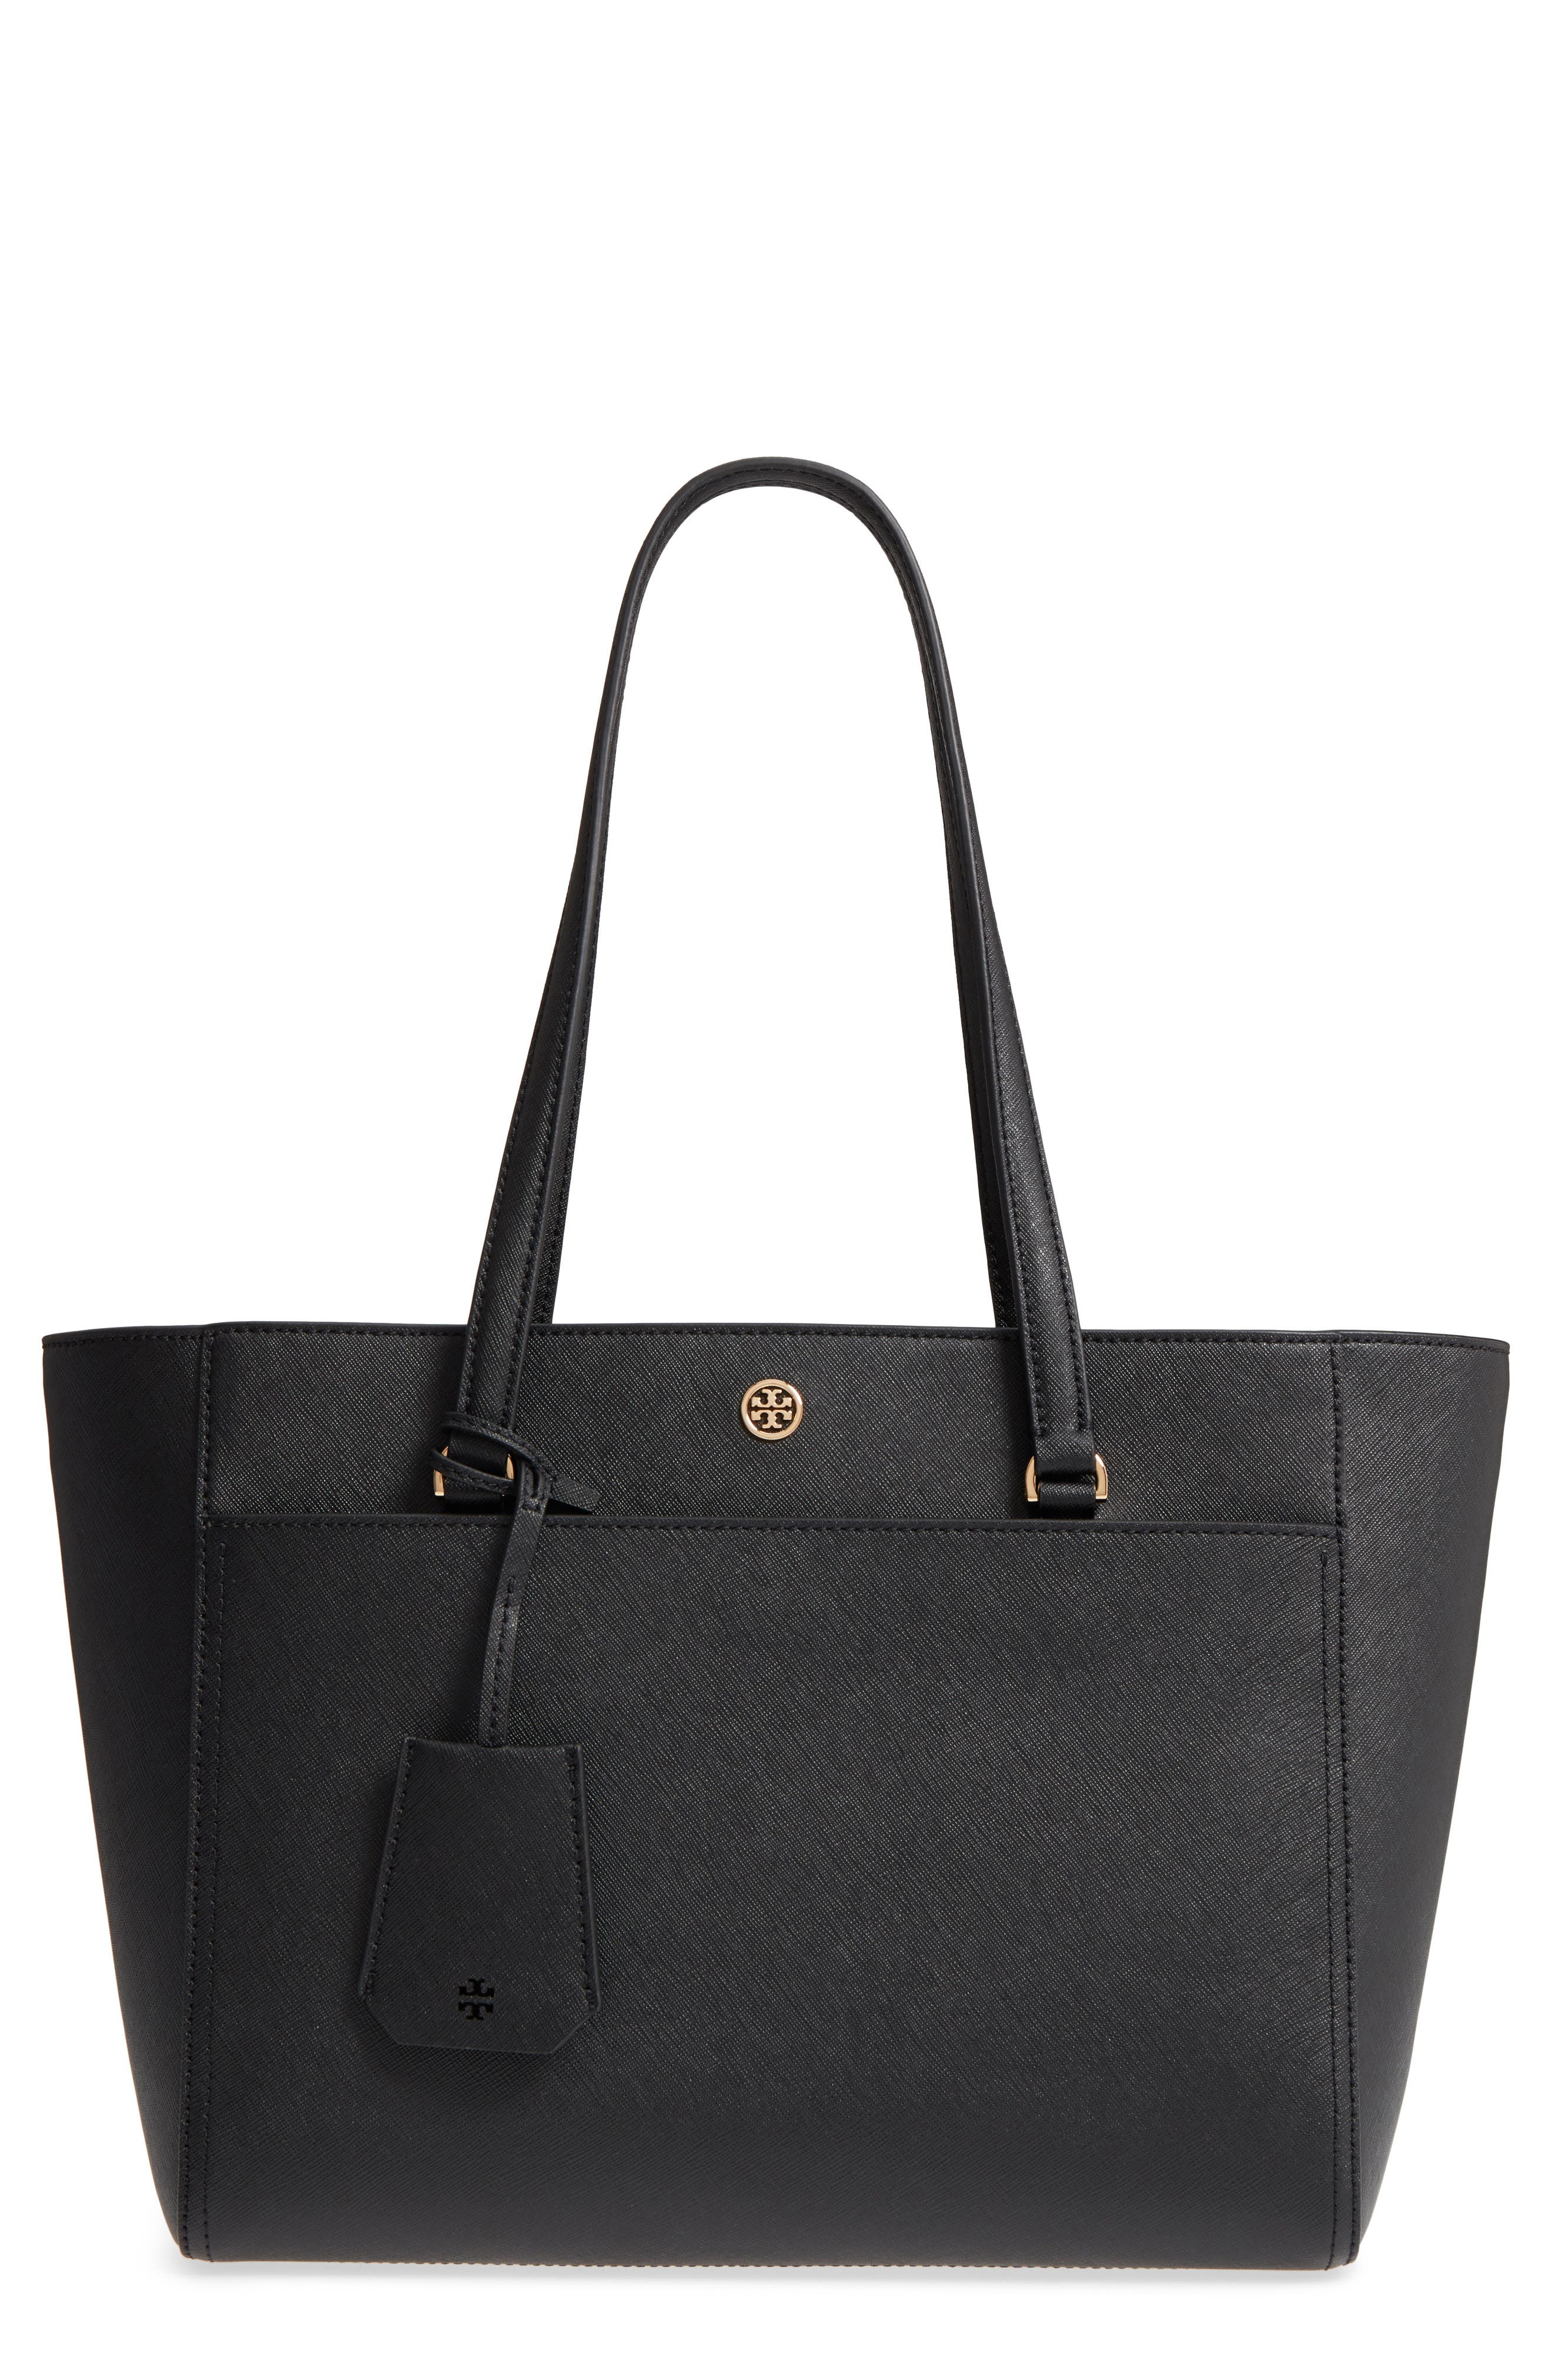 Robinson Small Saffiano Leather Zip-Top Shoulder Tote Bag in Black / Royal Navy